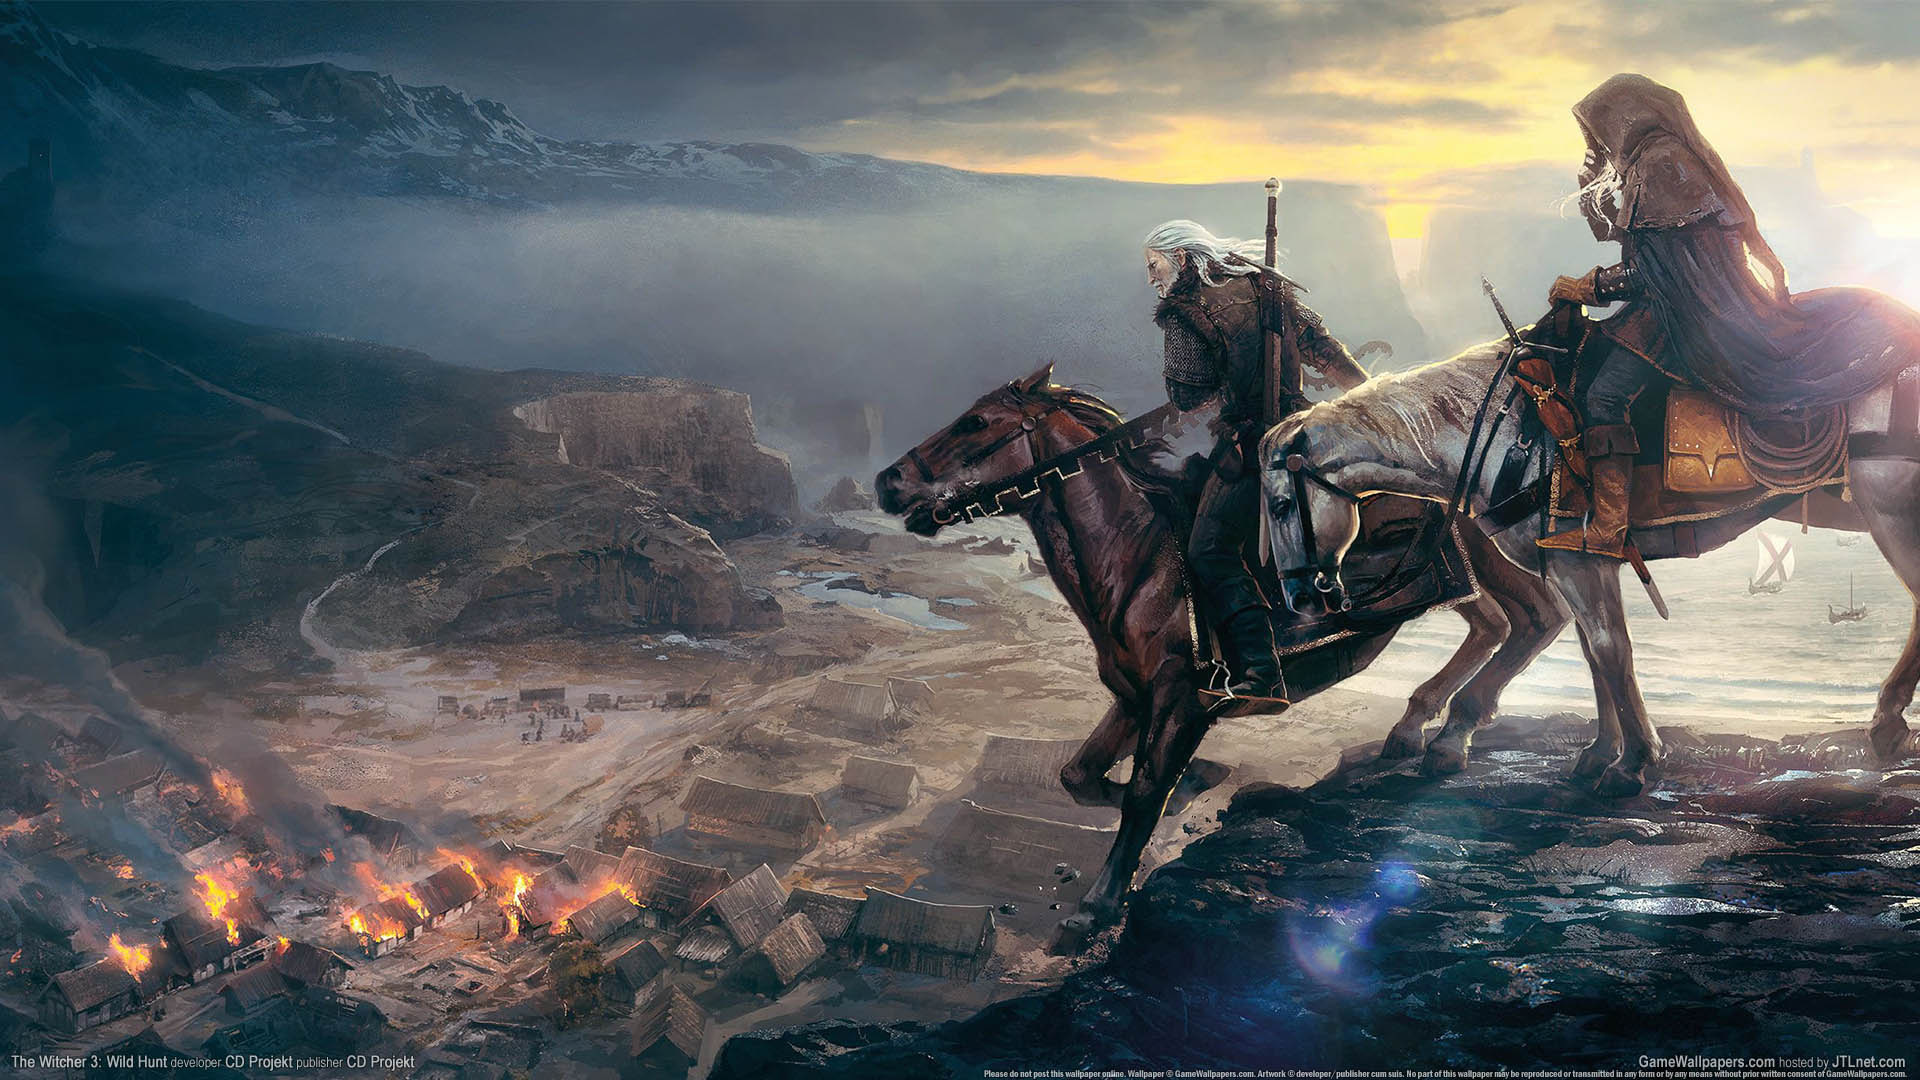 The Witcher 3 Wallpaper 1920x1080: The Witcher 3: Wild Hunt Wallpaper 02 1920x1080